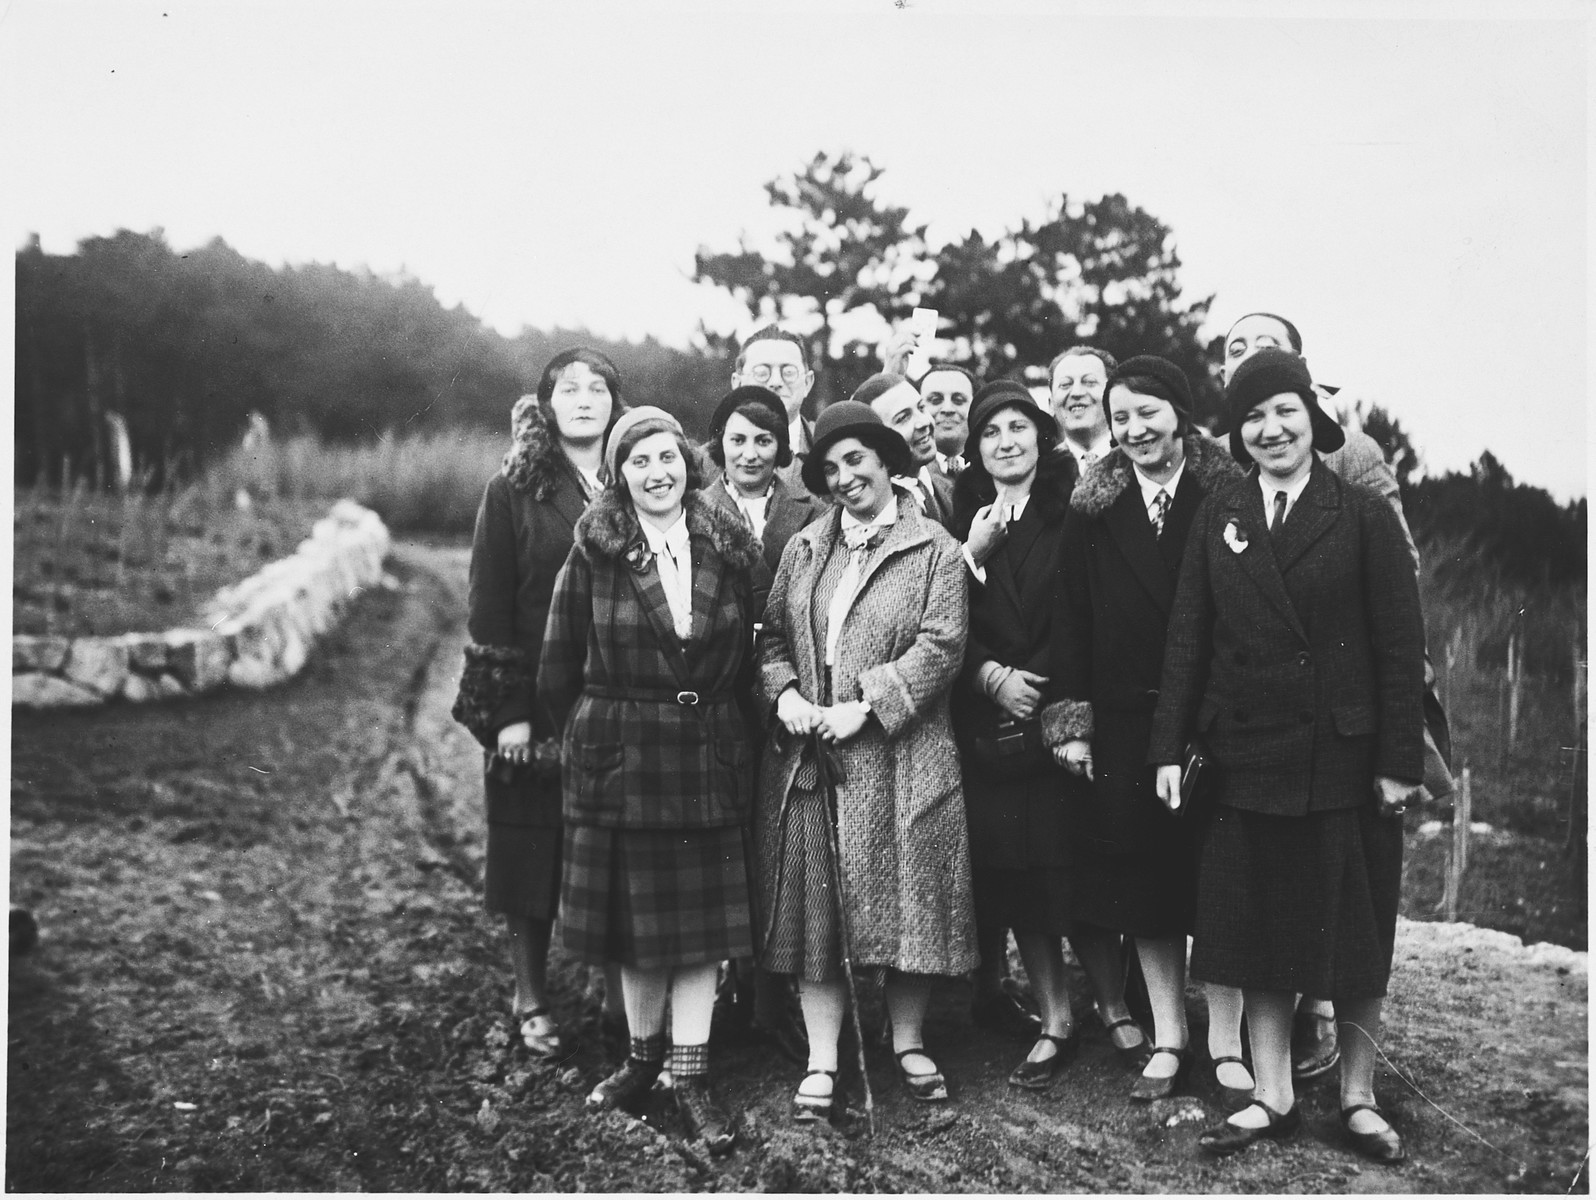 A group of Austrian-Jewish friends poses together during a weekly Sunday excursion to the parks.  Among those pictured are Wilhelm and Irene Basser.